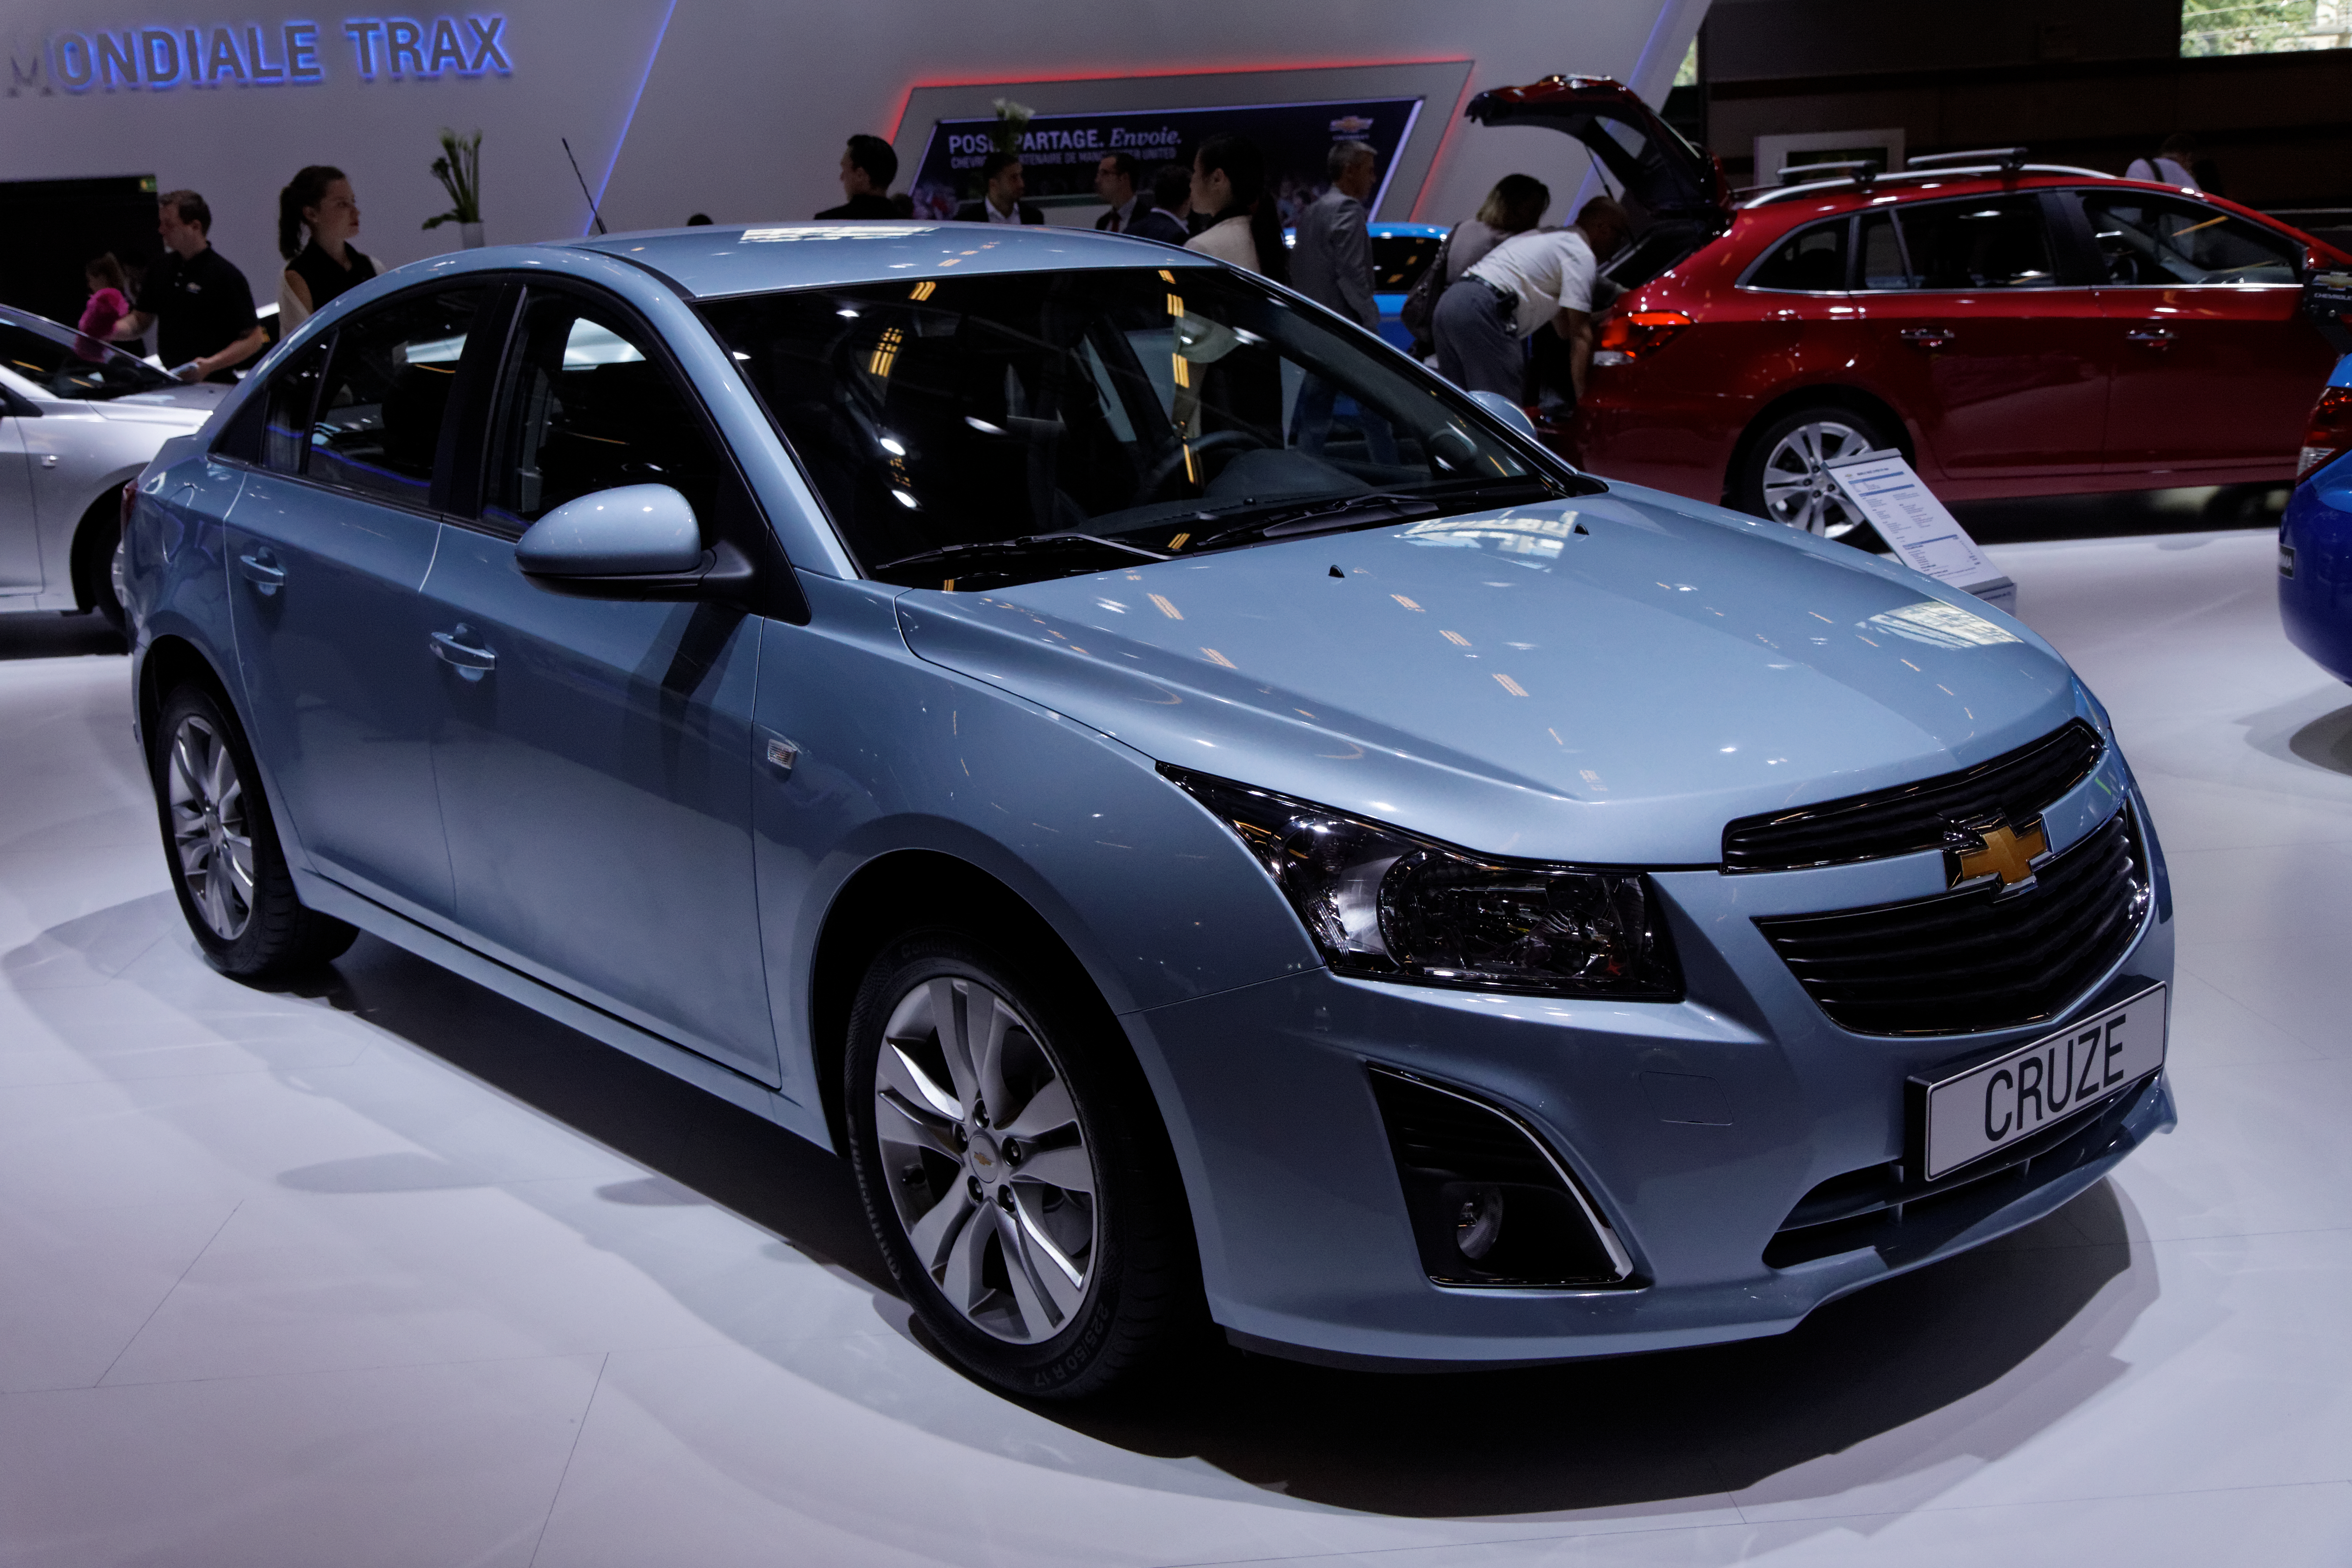 Chevrolet Cruze   pictures, information and specs - Auto-Database.com